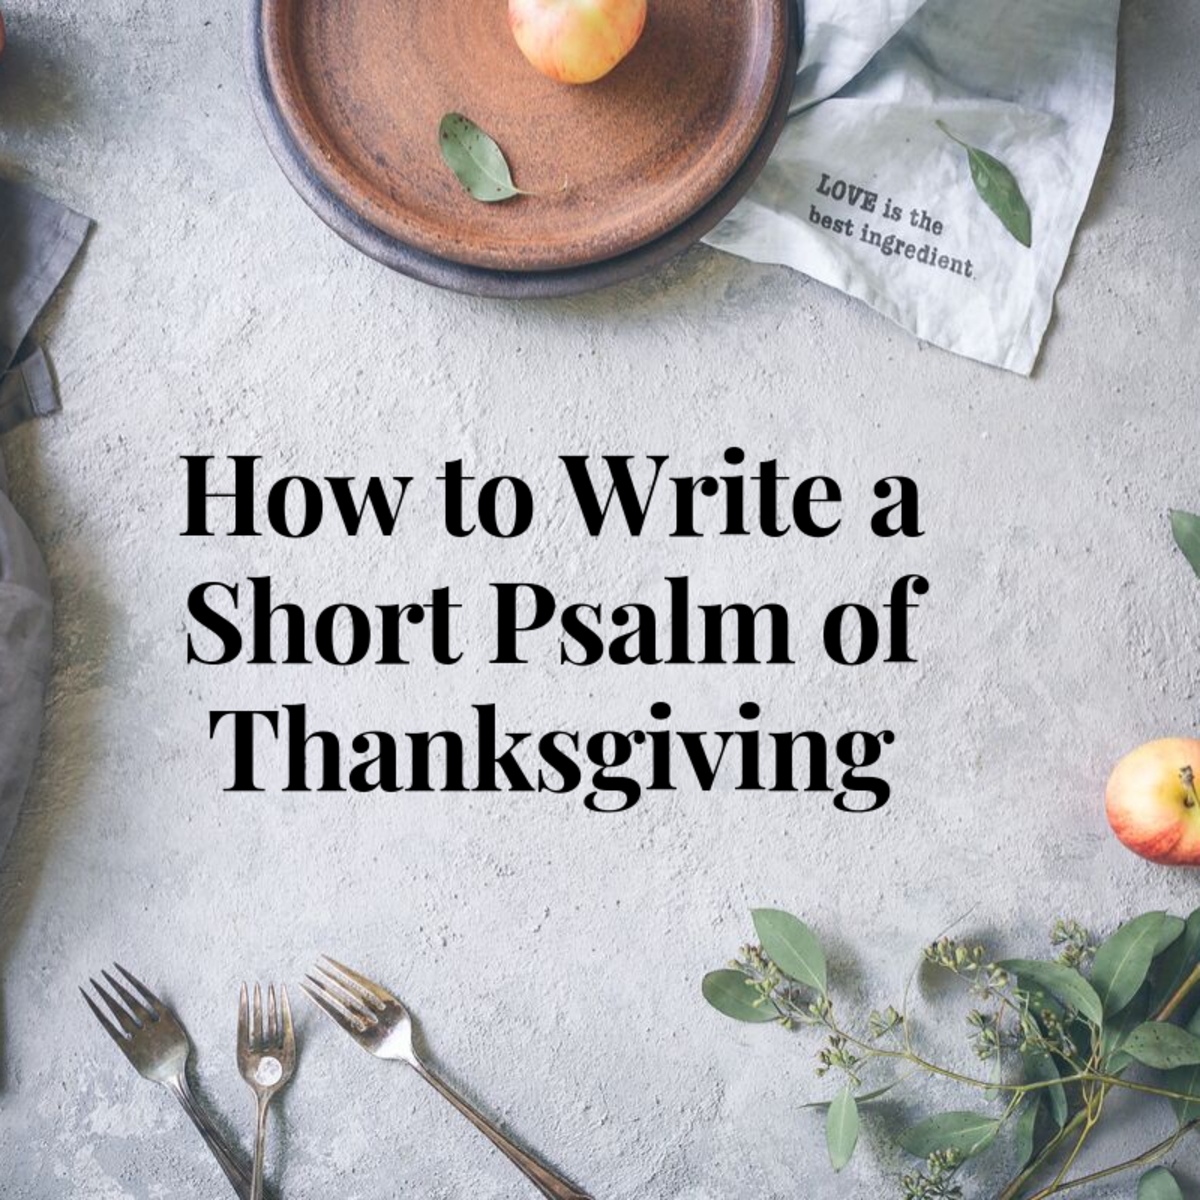 These tips and tricks will help you write the best psalm possible.